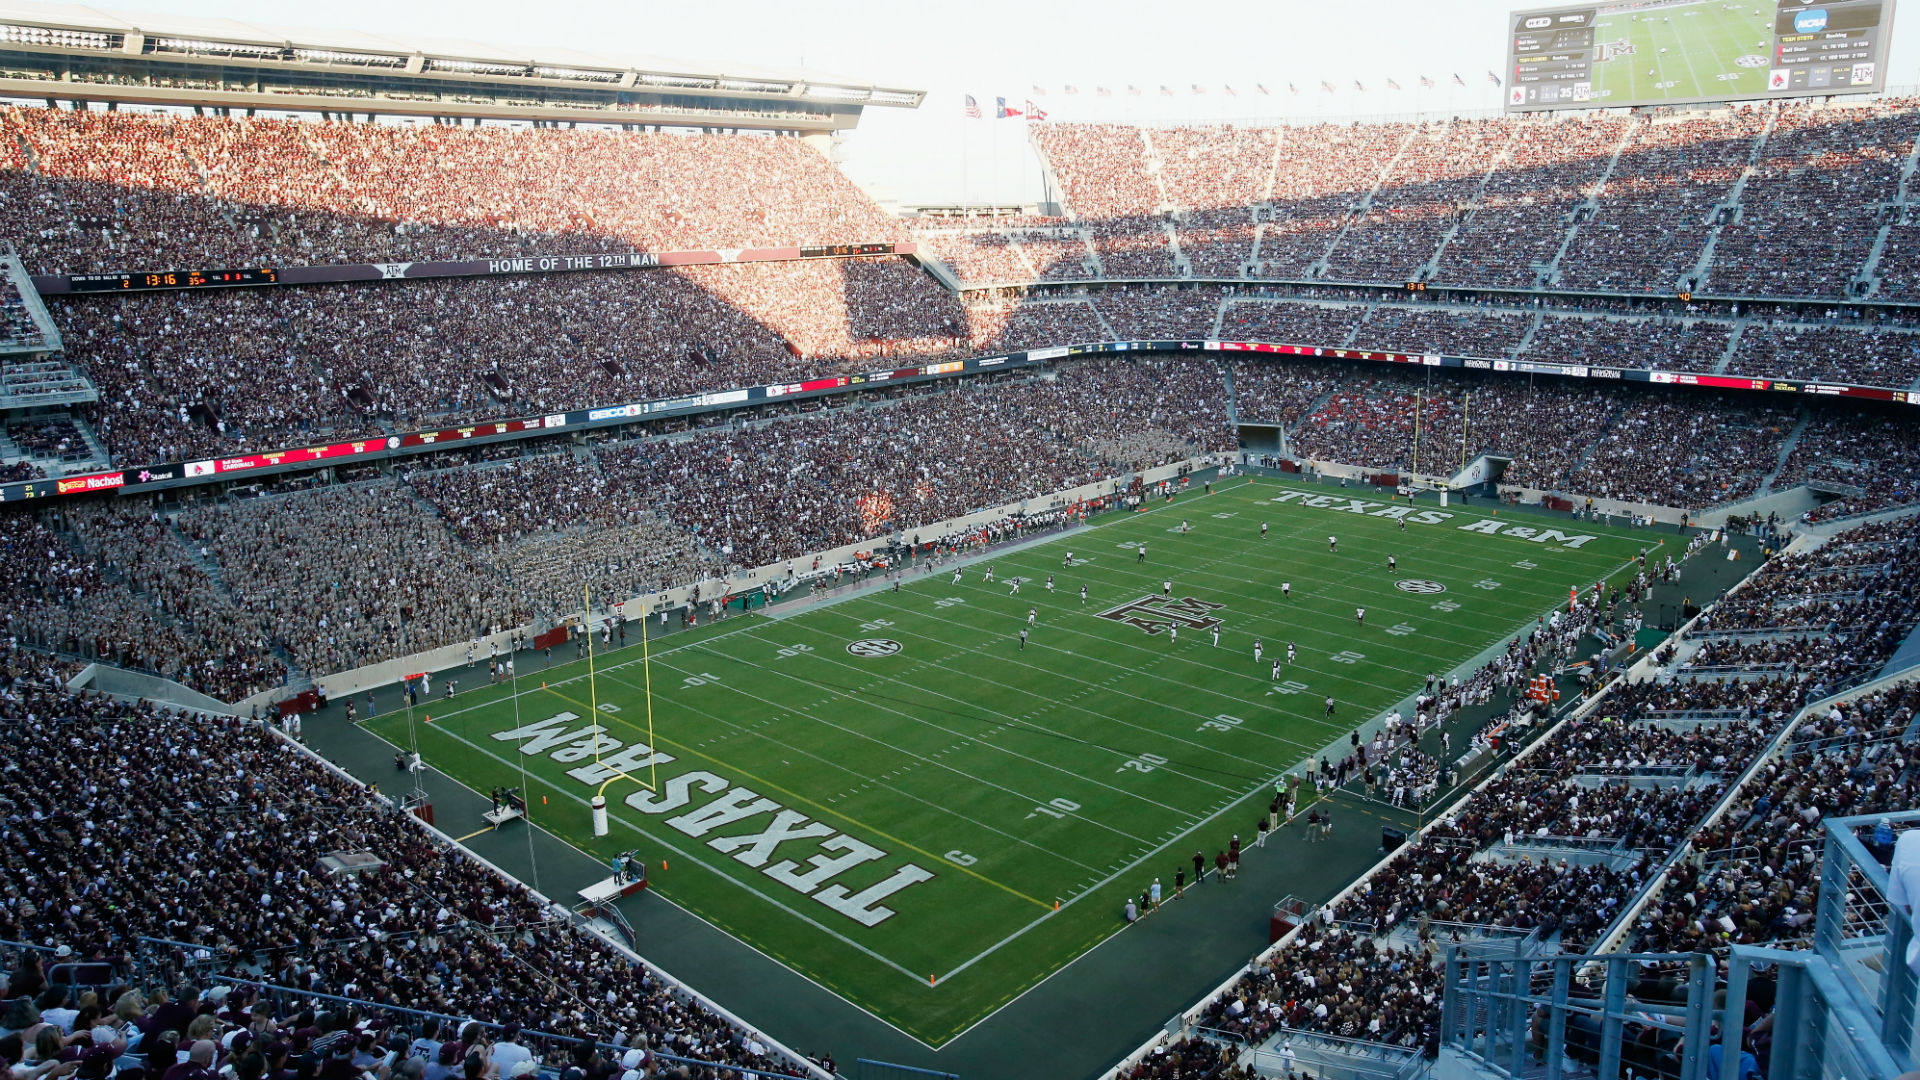 kyle-field-092315-getty-ftrjpg_17049t8anqu9010xe6mf52na00.jpg